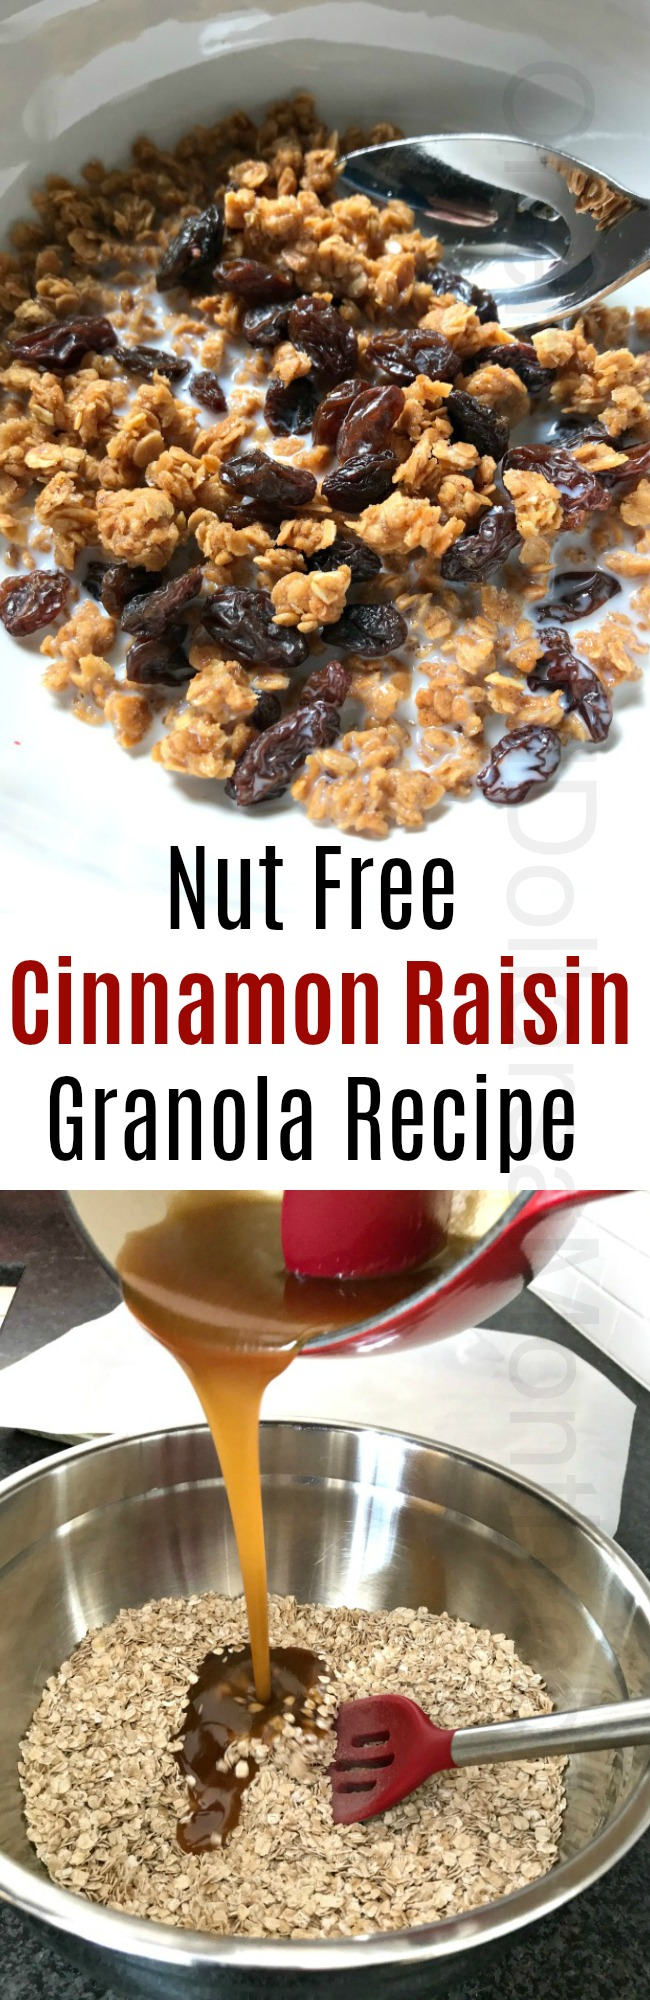 Simple {Nut Free} Cinnamon Raisin Granola Recipe